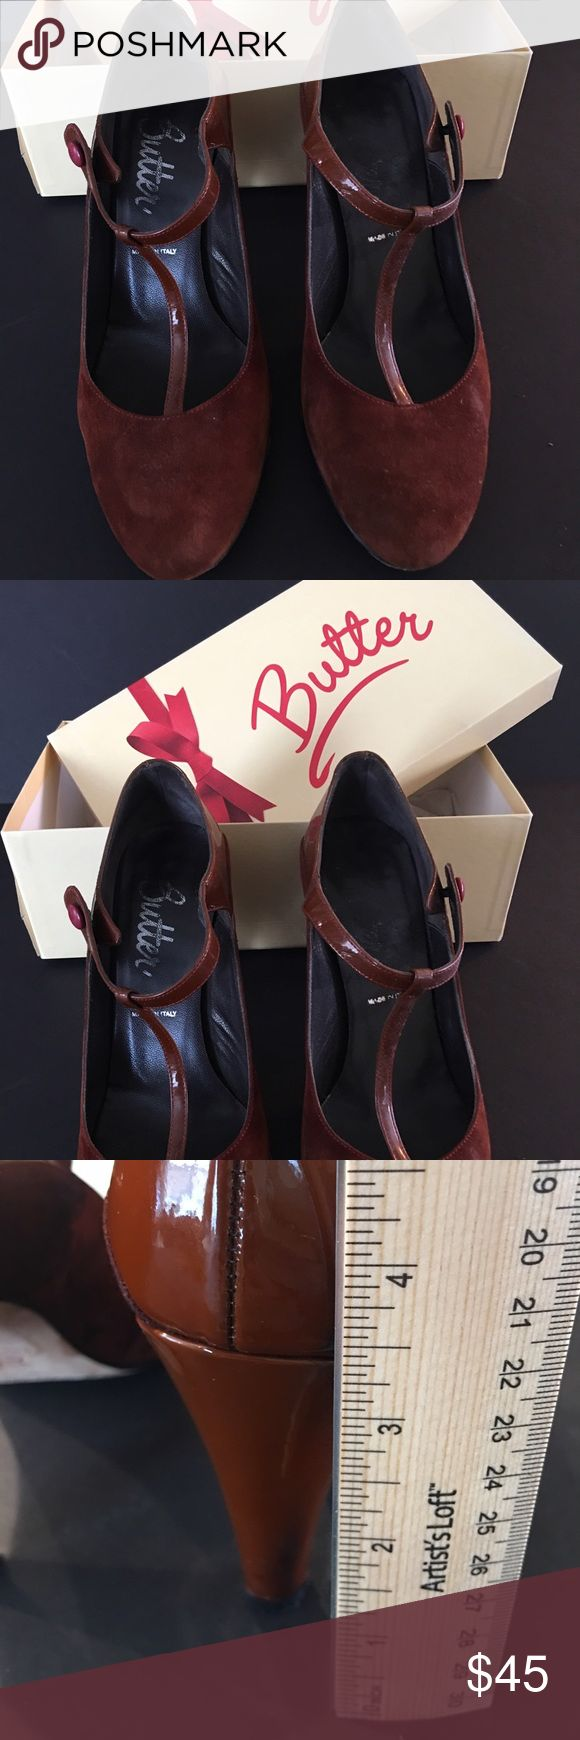 "Butter Swede and Patented Shoes Size 8 - used Butter swede and patented leather shoes. Rust color Size 8, approx 3"" heel. Sole is leather. Shoes are in original box.  ""Betty"" model. Please ask questions before purchasing as I do my best to describe items.  🚫 trades. Reasonable offers accepted. Butter Shoes Shoes Heels"